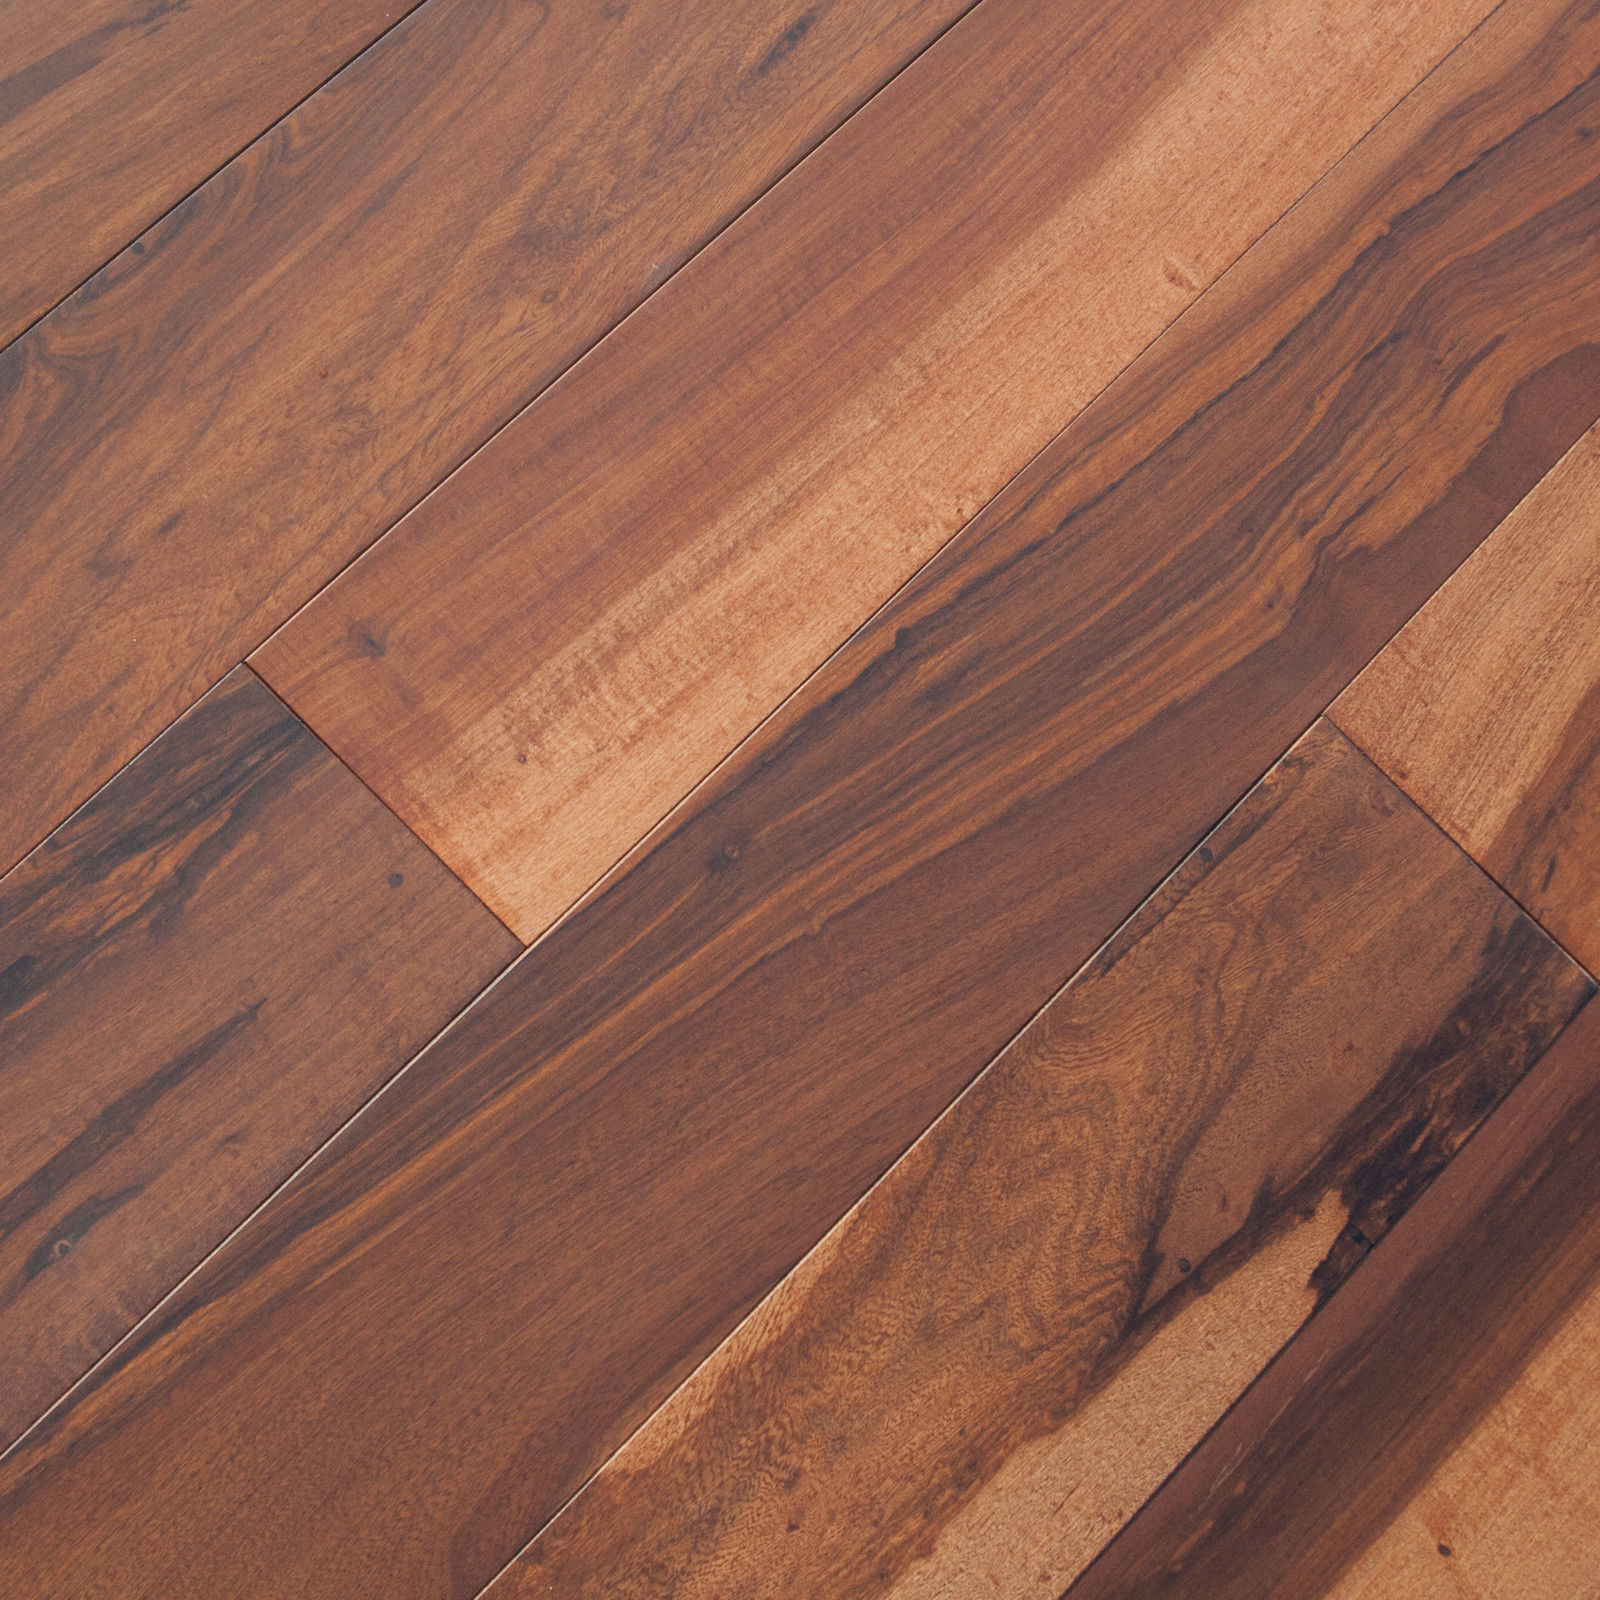 Macchiato Pecan Chocolate Hardwood Flooring